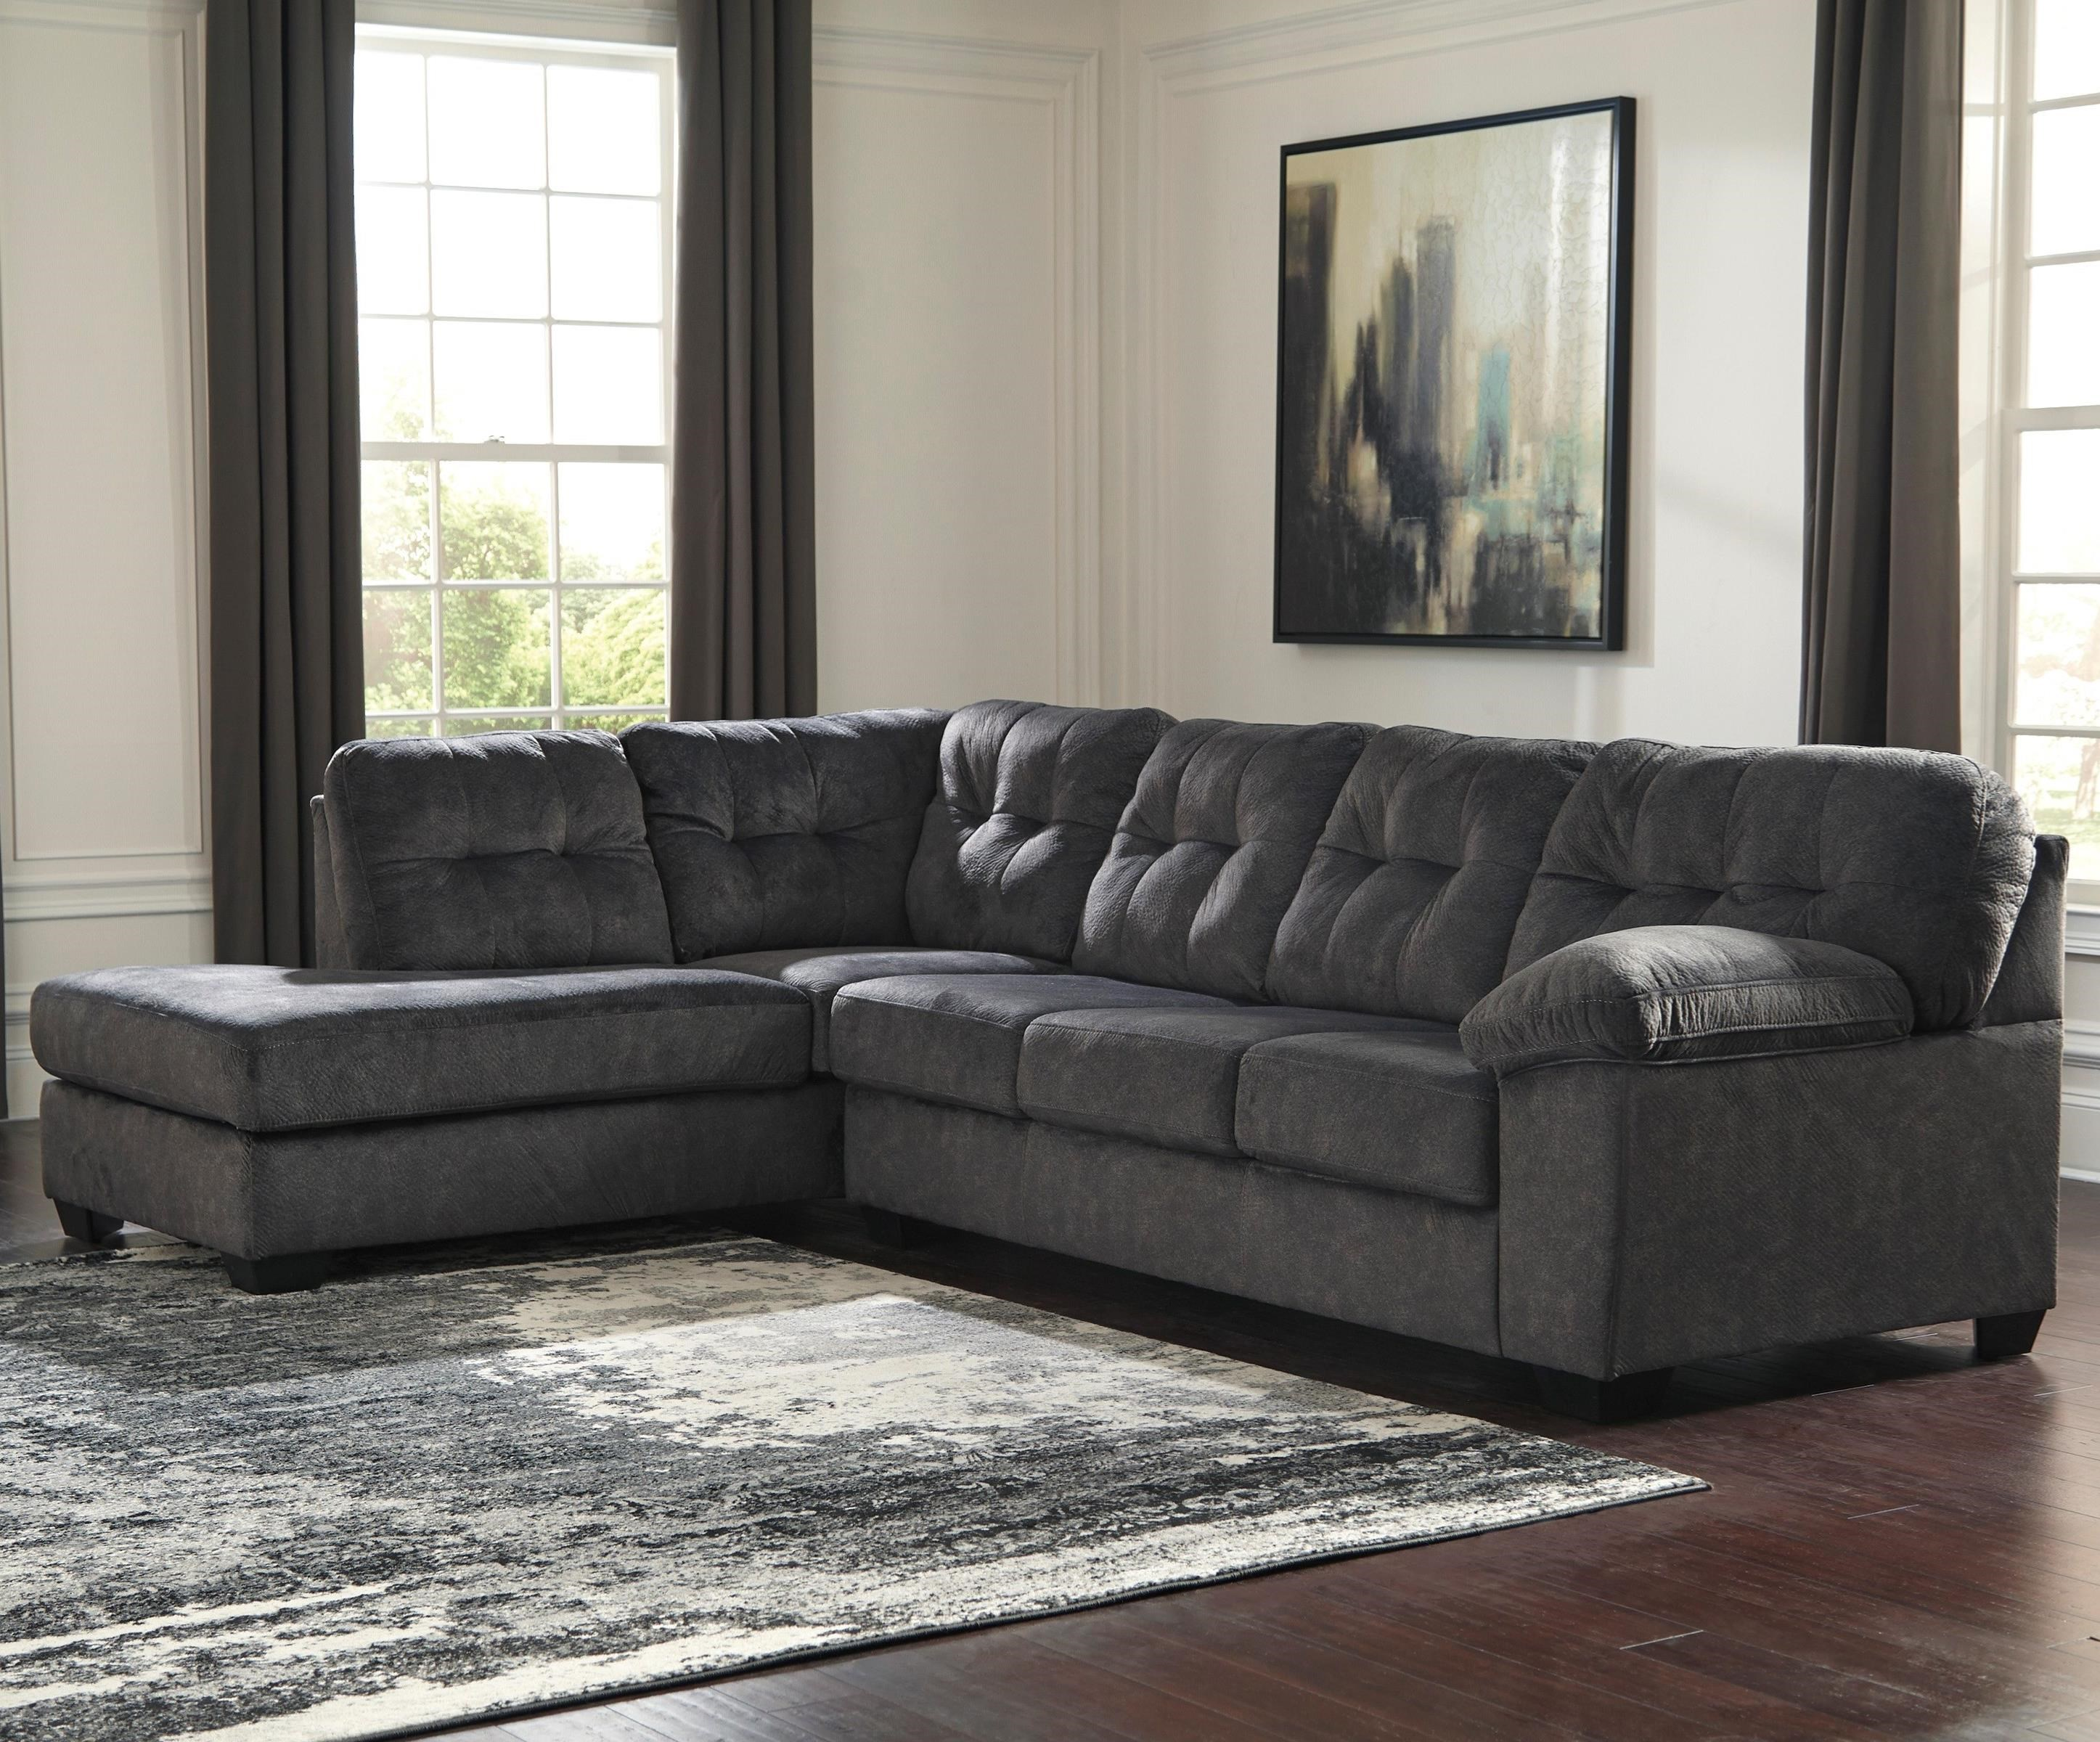 Accrington Sectional with Left Chaise by Ashley (Signature Design) at Johnny Janosik